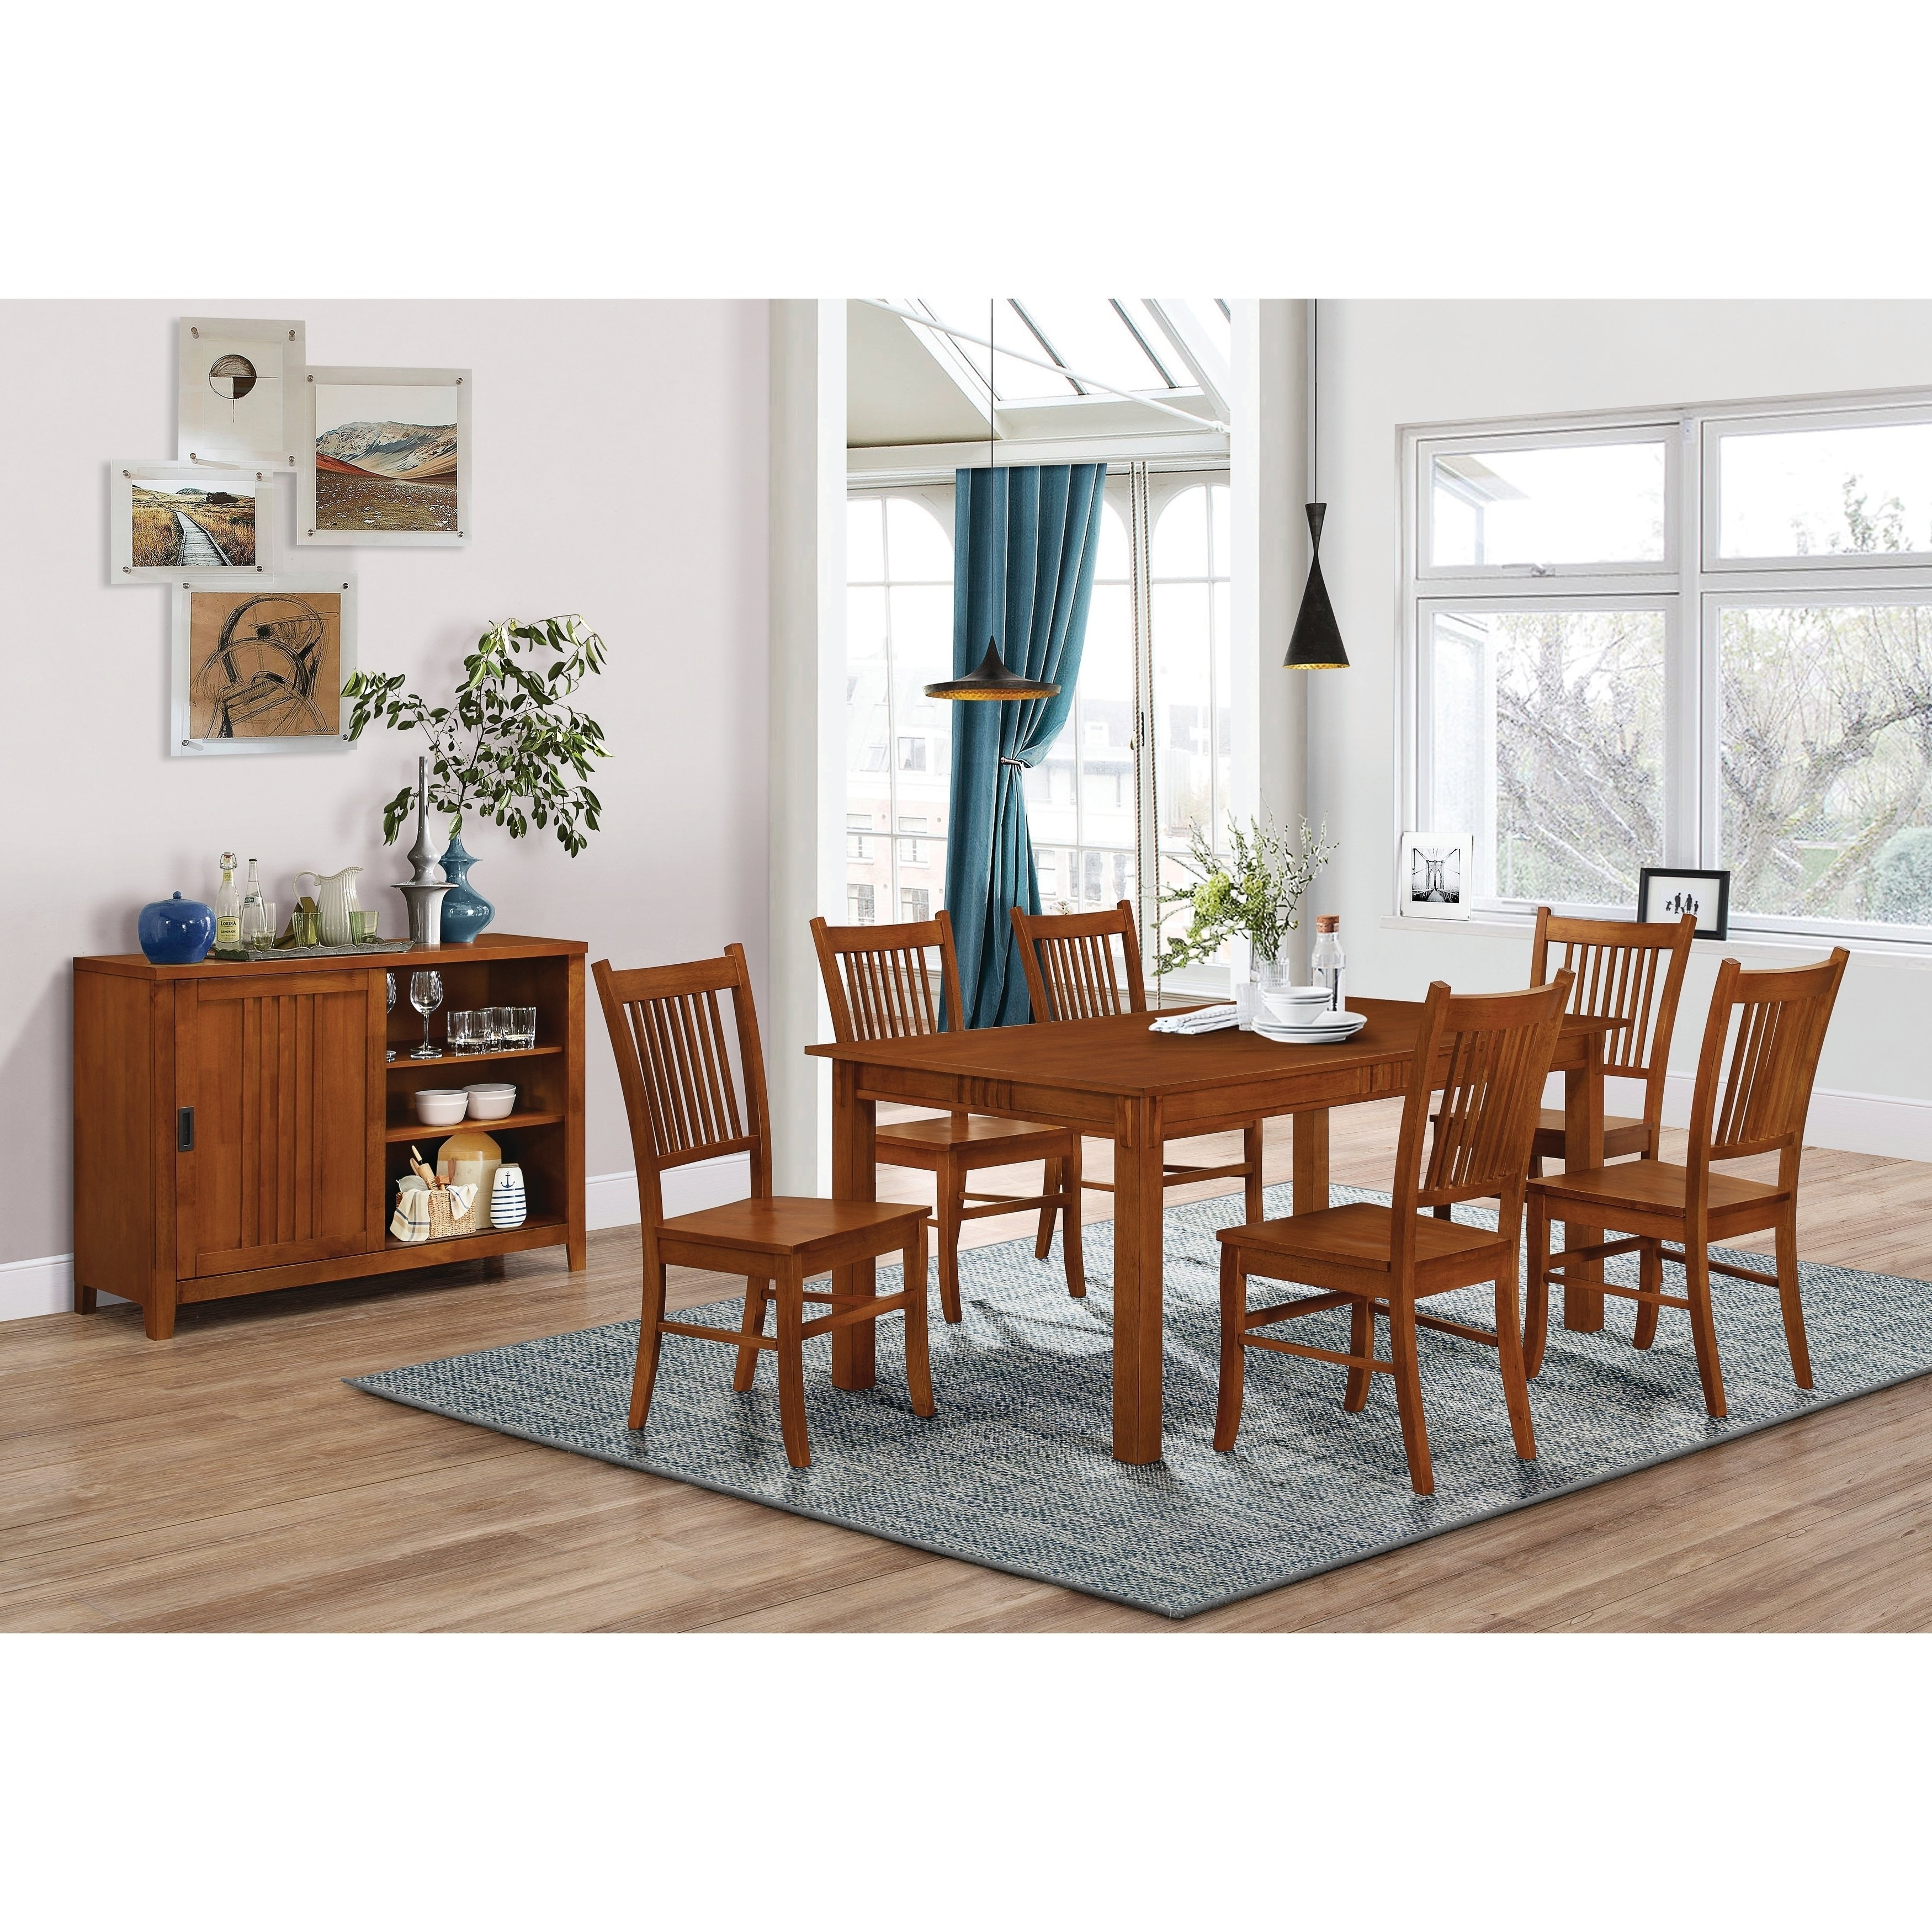 Craftsman 7 Piece Rectangular Extension Dining Sets With Arm & Uph Side Chairs Regarding Fashionable Shop Marbrisa Mission Oak 7 Piece Dining Set – Free Shipping Today (View 9 of 25)